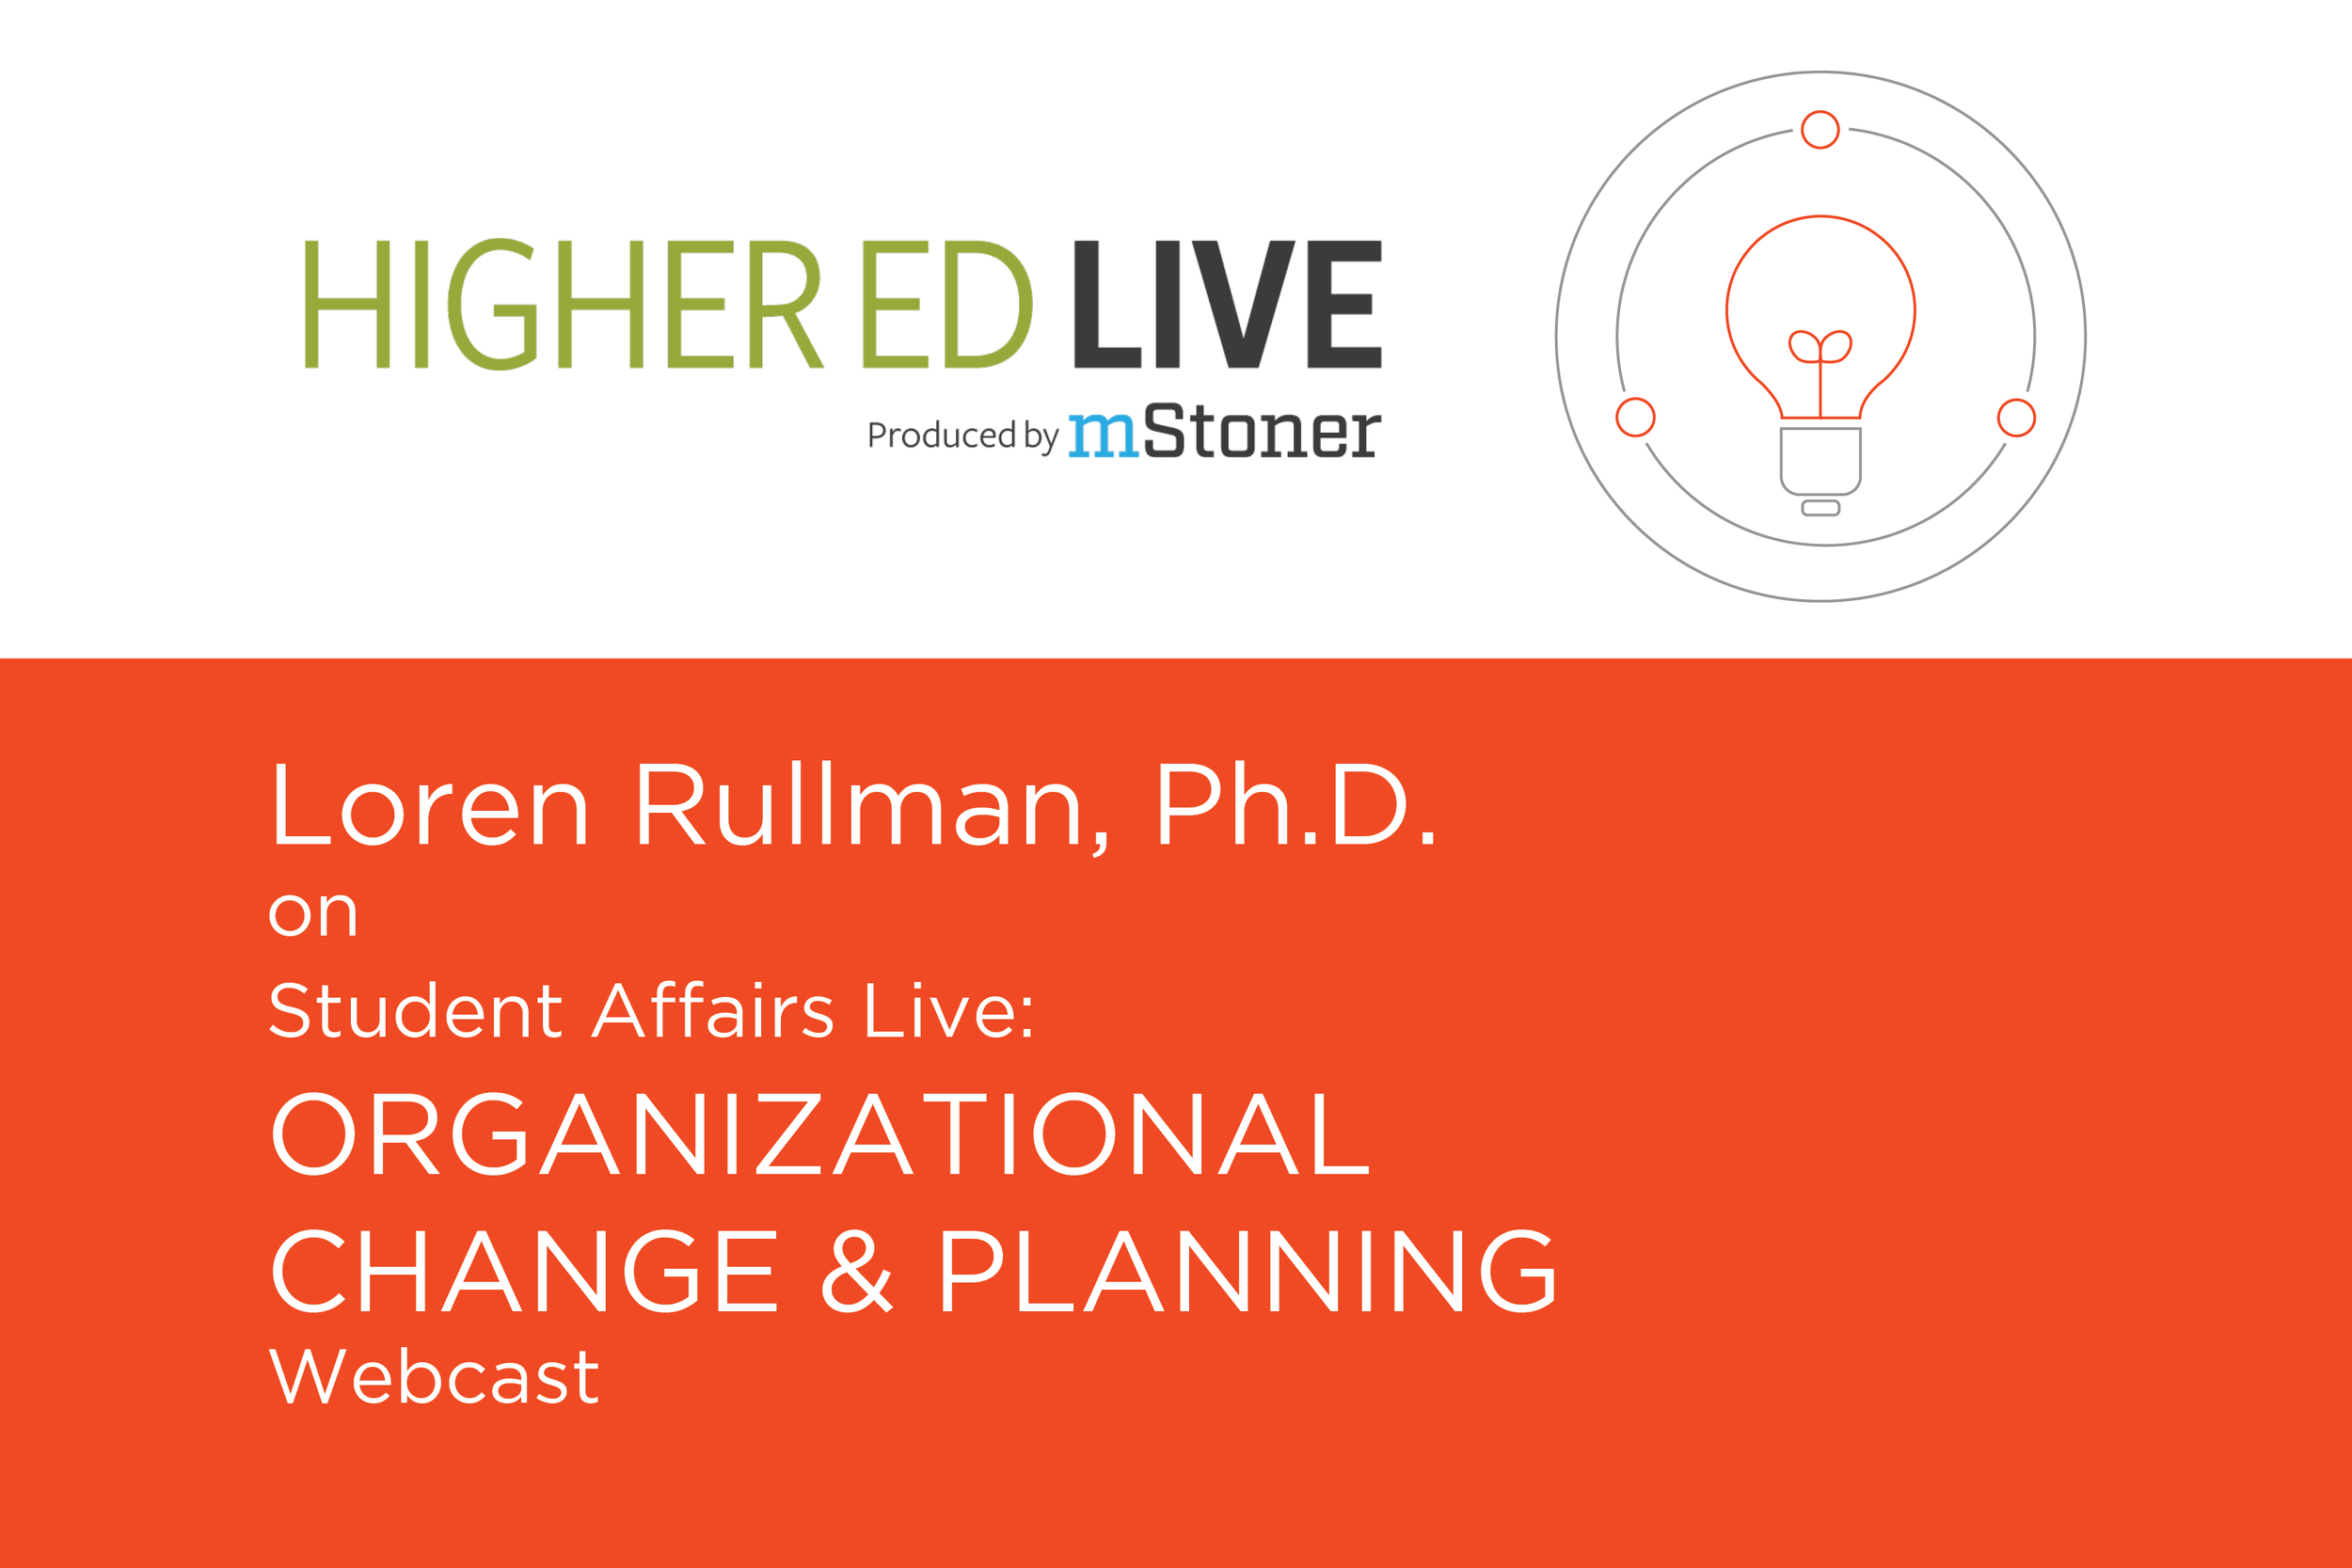 Dr. Rullman Featured on Higher Ed Live Webcast